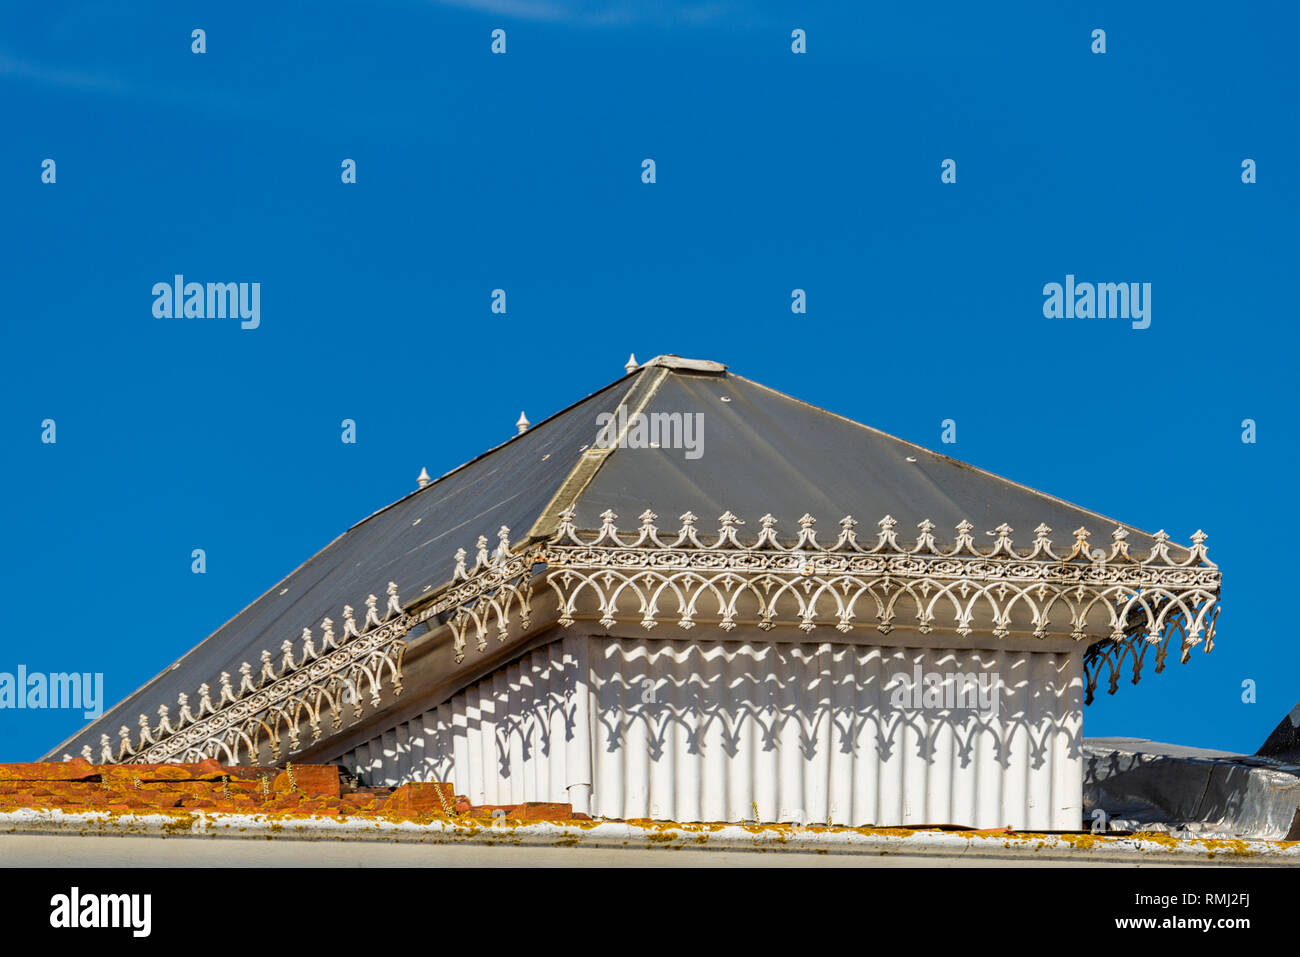 detail of an industrial building in the Alcantara district, Lisbon, Portugal Stock Photo